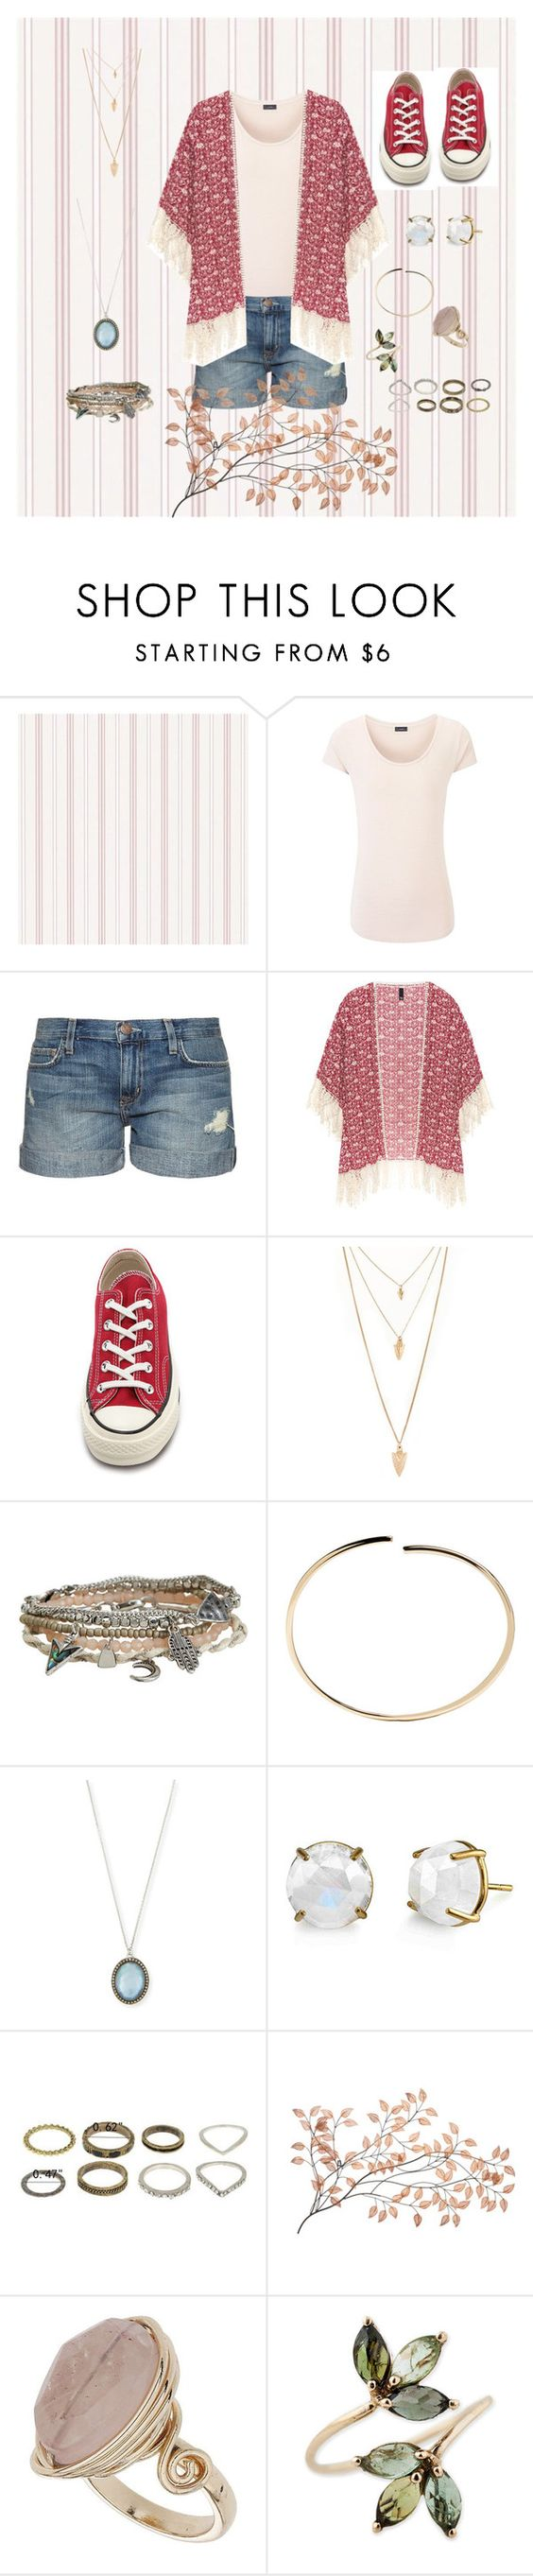 """""""End of Summer Fashion!"""" by dancerella-ng ❤ liked on Polyvore featuring Joseph, Current/Elliott, Manon Baptiste, Converse, Forever 21, Aéropostale, Maison Margiela, Armenta, Topshop and women's clothing"""